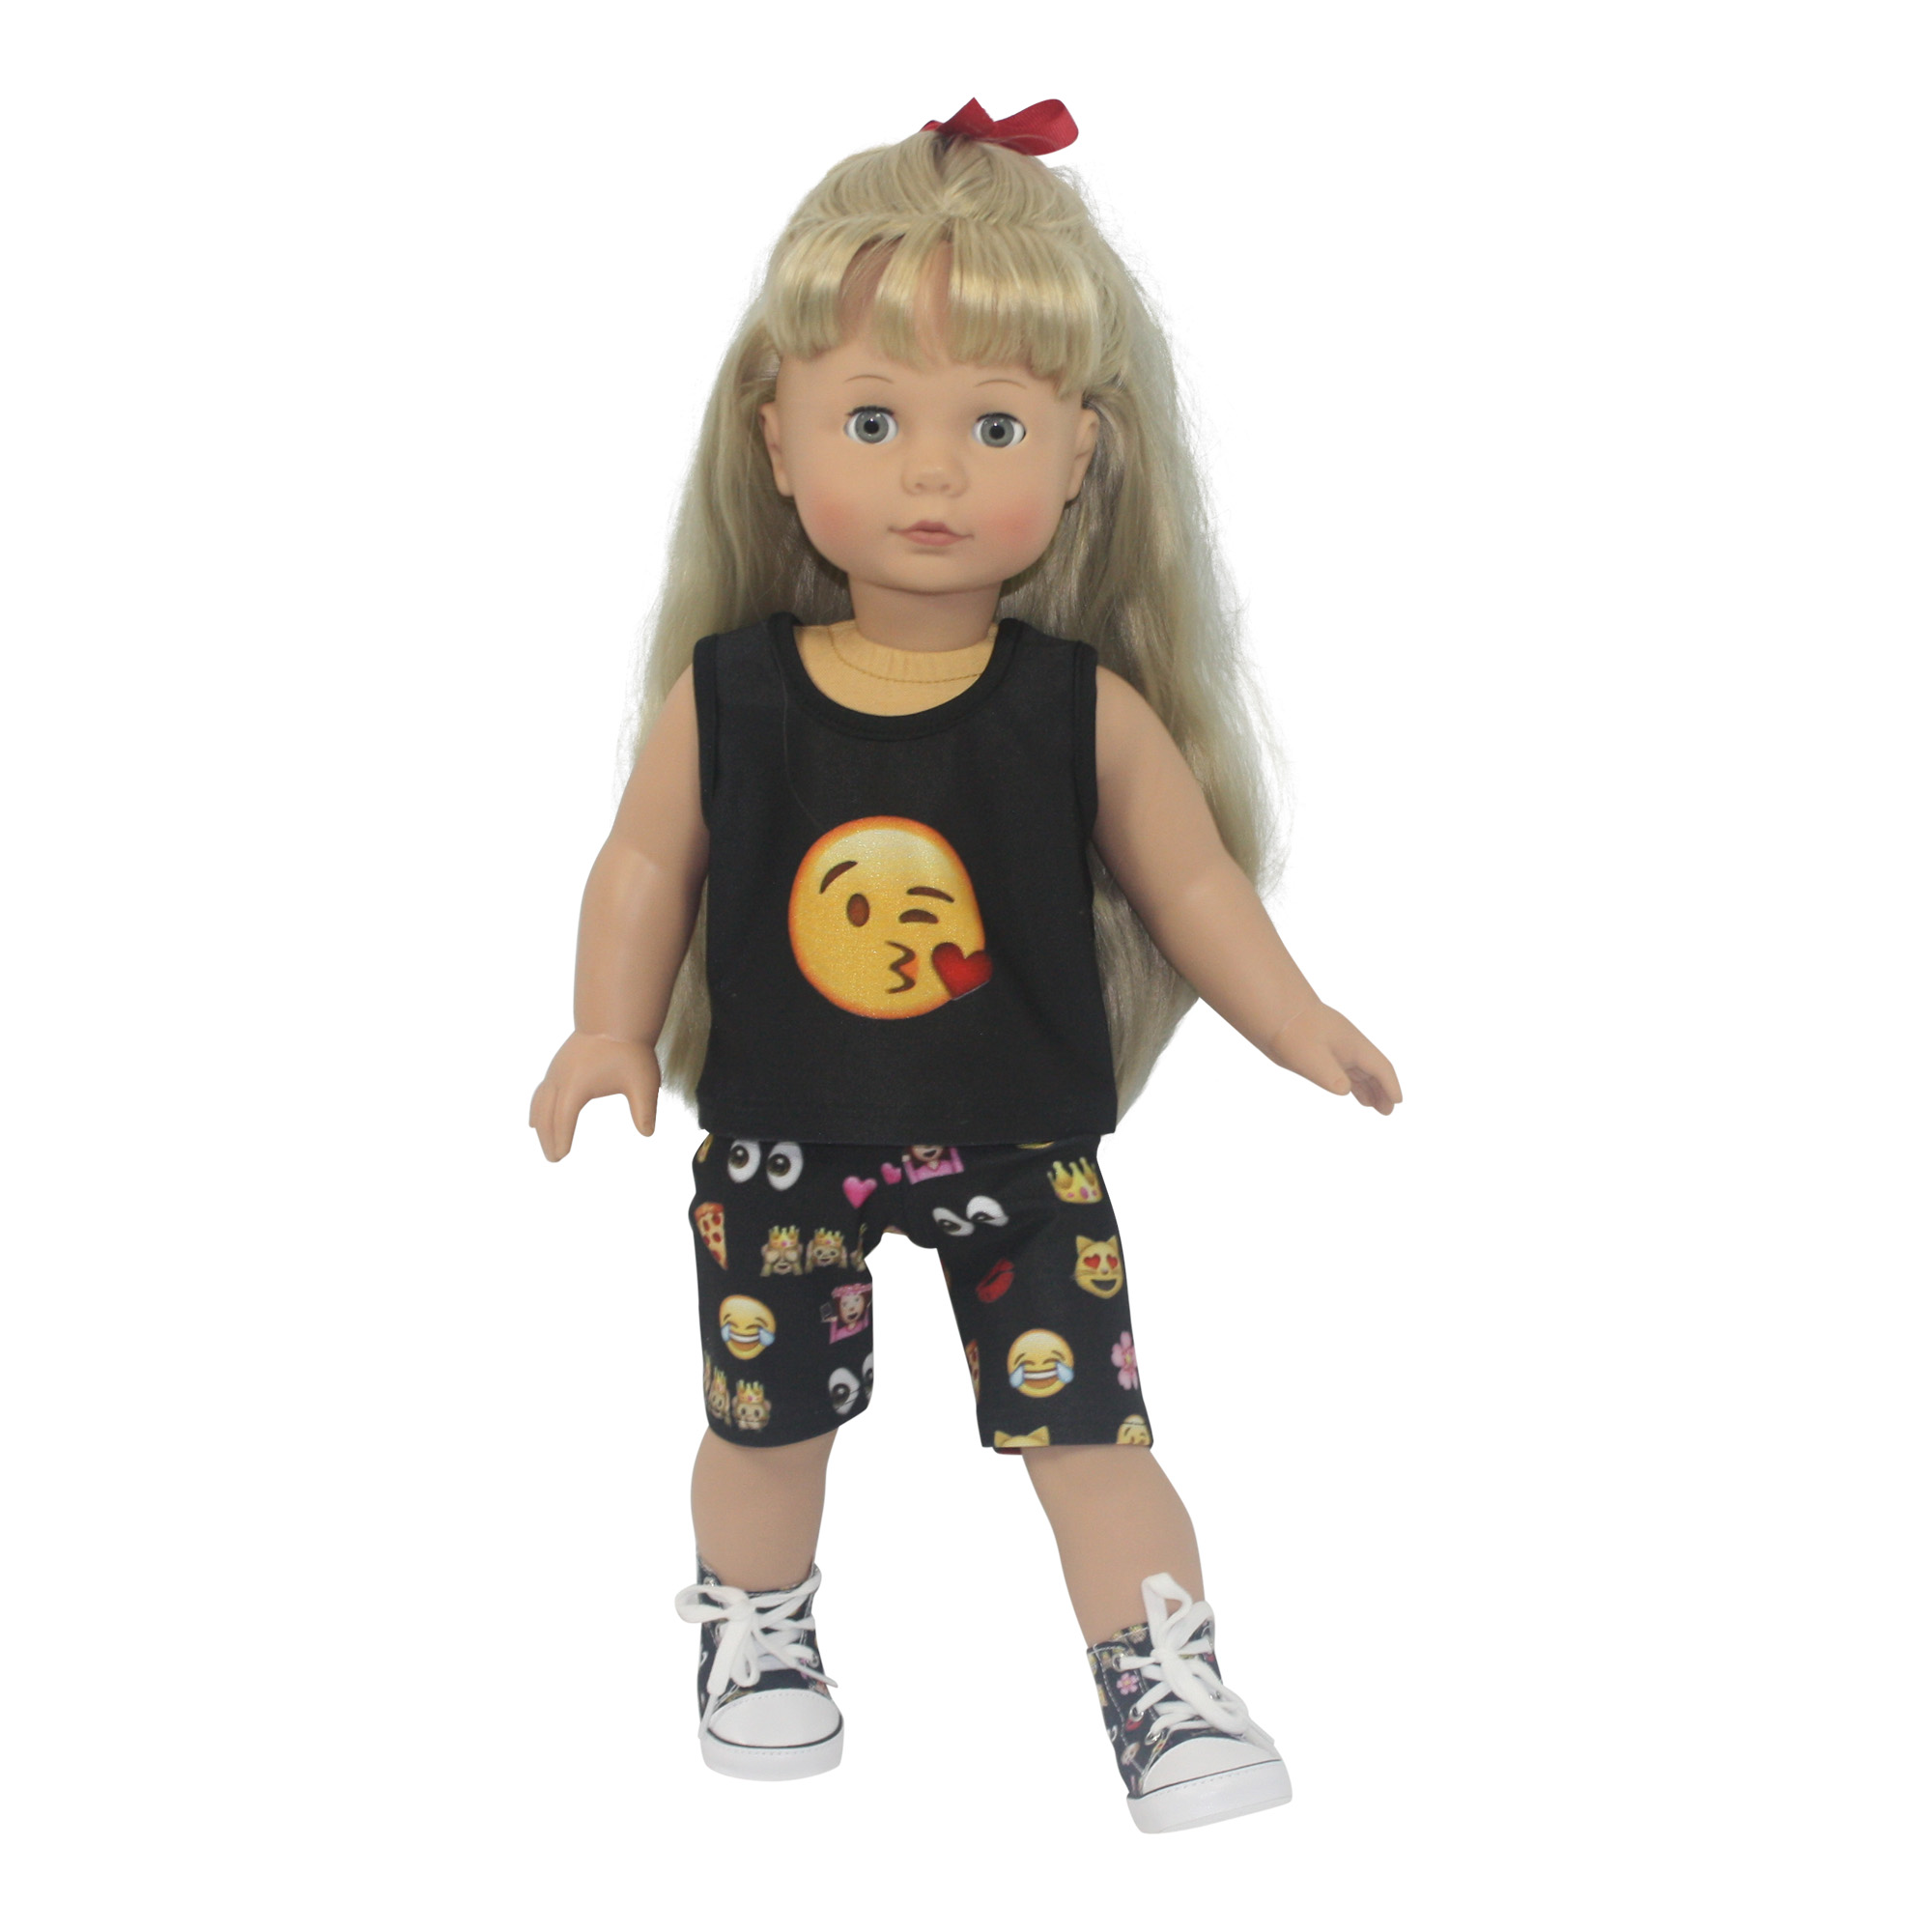 "Ari and Friends Emoji Capri Shorts Set Fits 18"" American Girl Dolls and other 18 inch... by Dream Big Wholesale Doll Clothes"